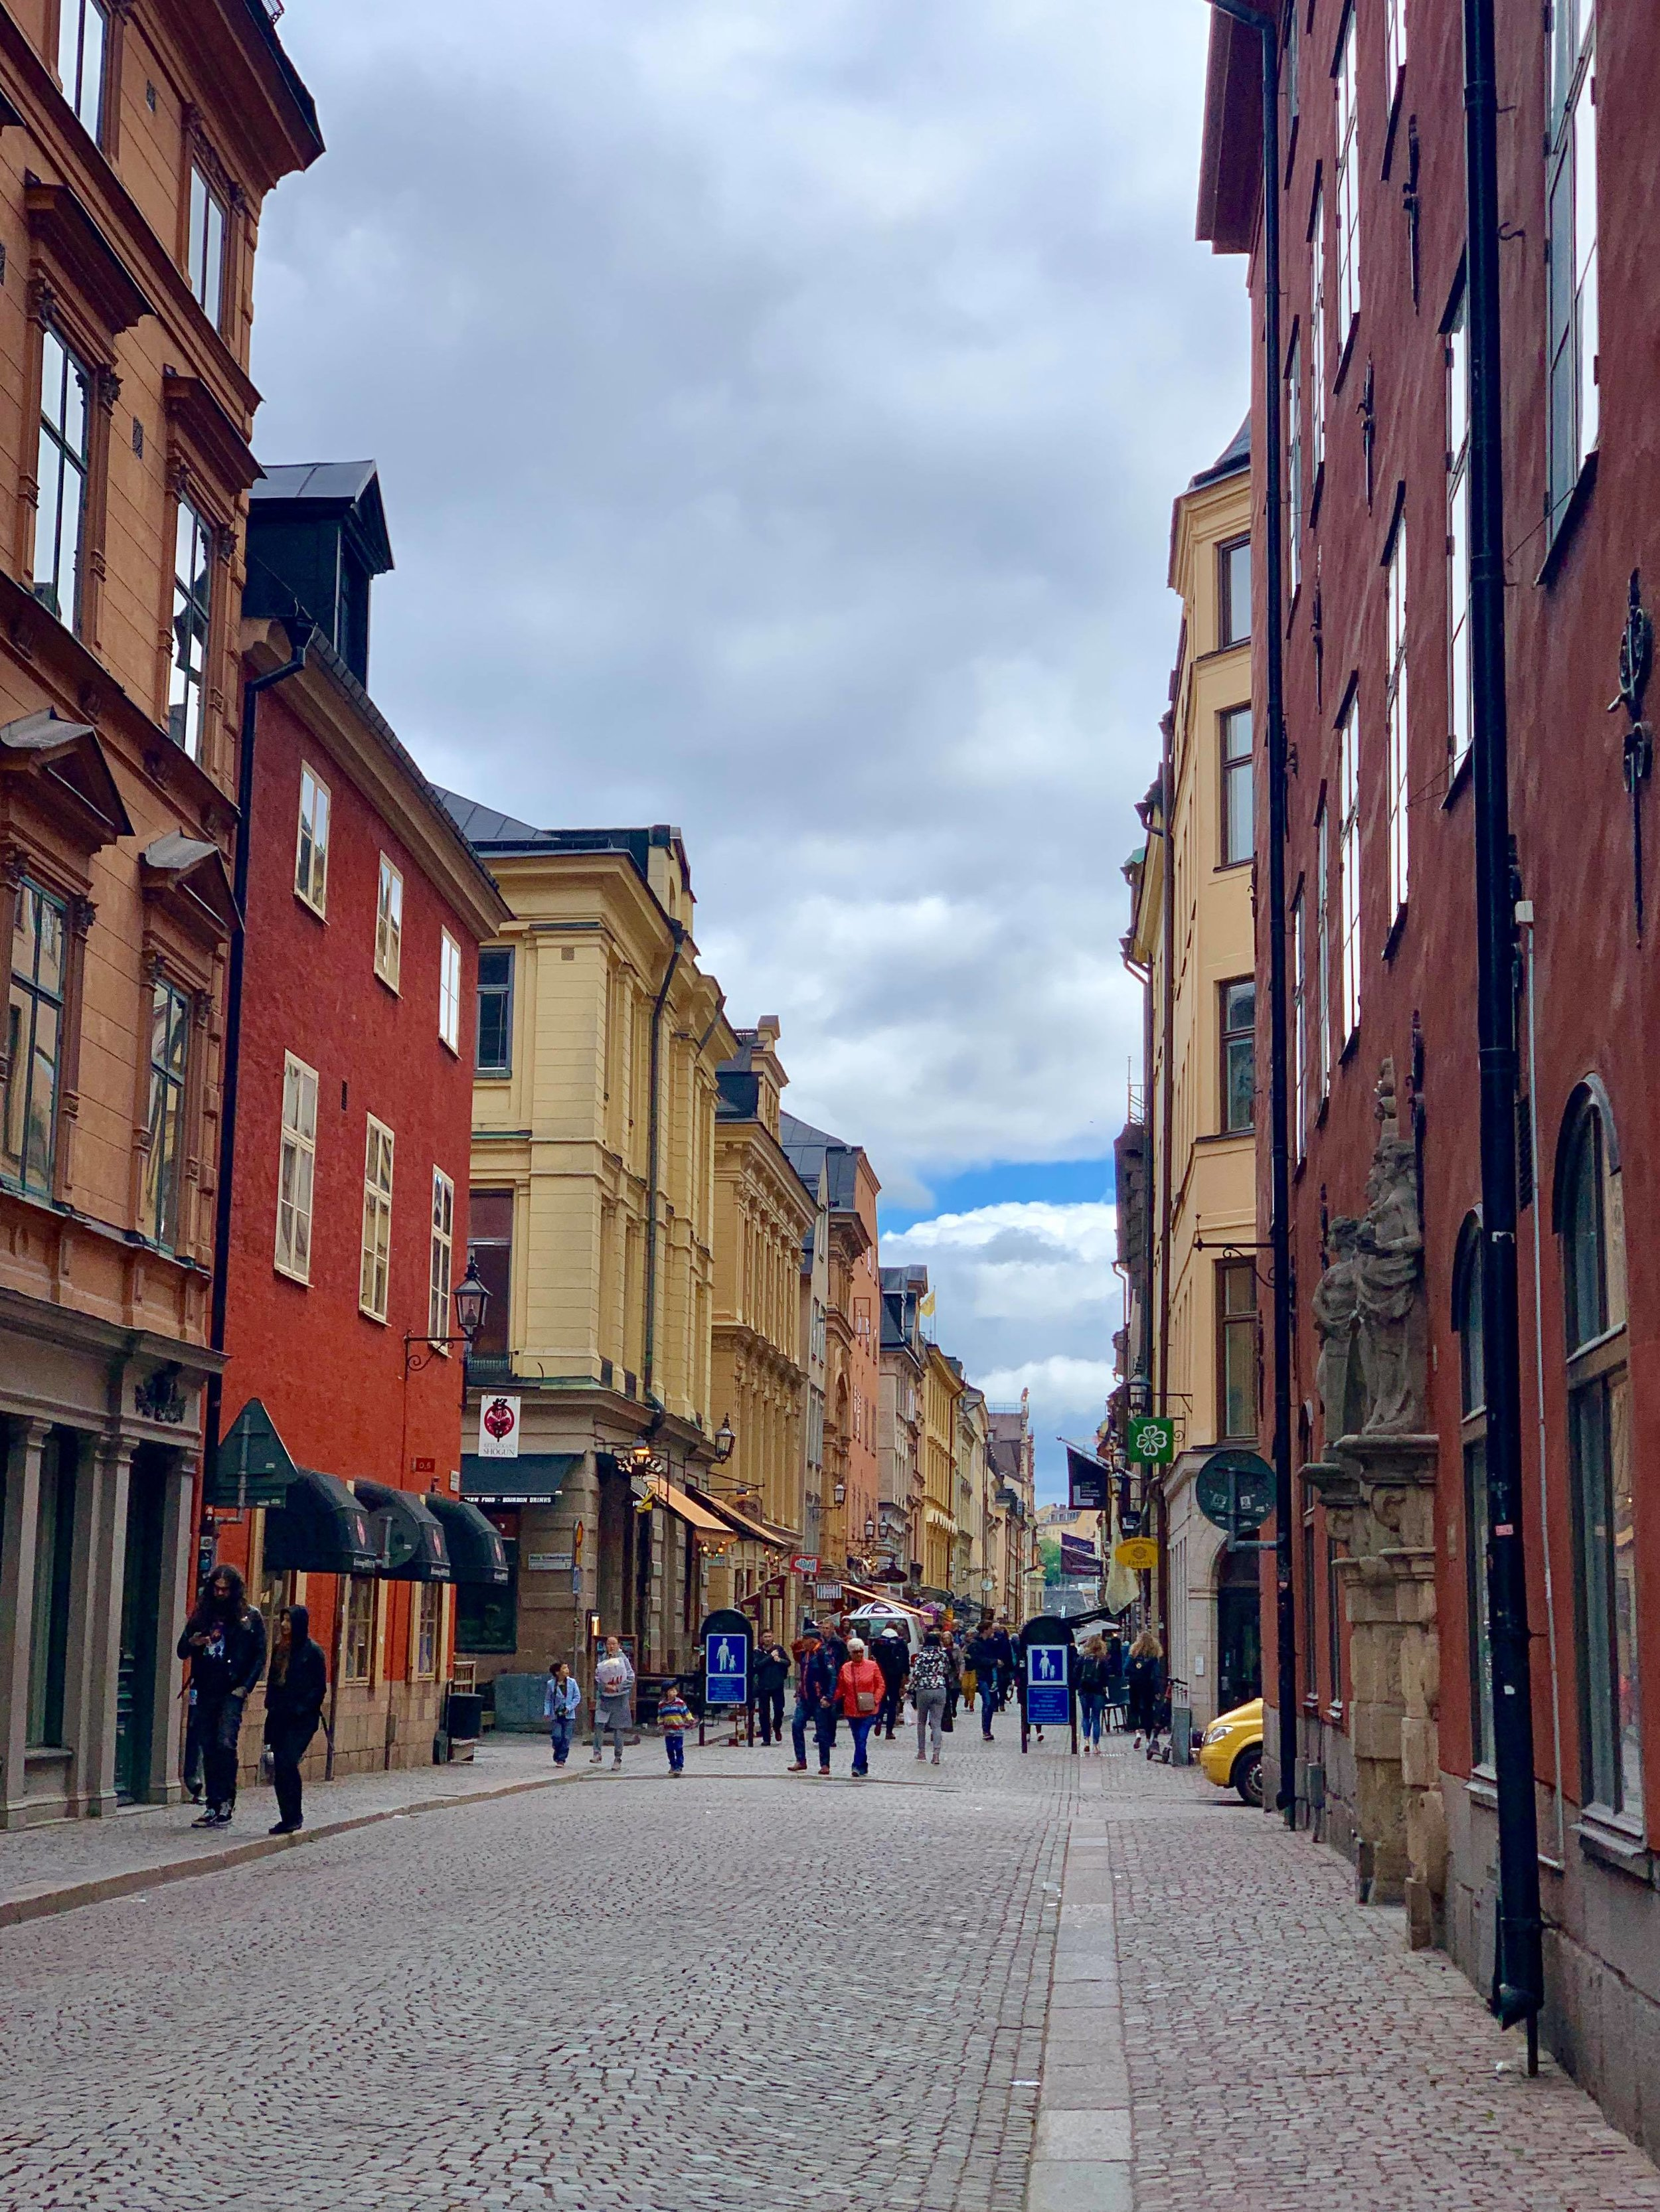 The old-town - Gamla stan has been standing since the 13th century, and today consists of medieval alleyways, cobbled streets, and archaic architecture. North German architecture has had a strong influence in the Old Town's construction.